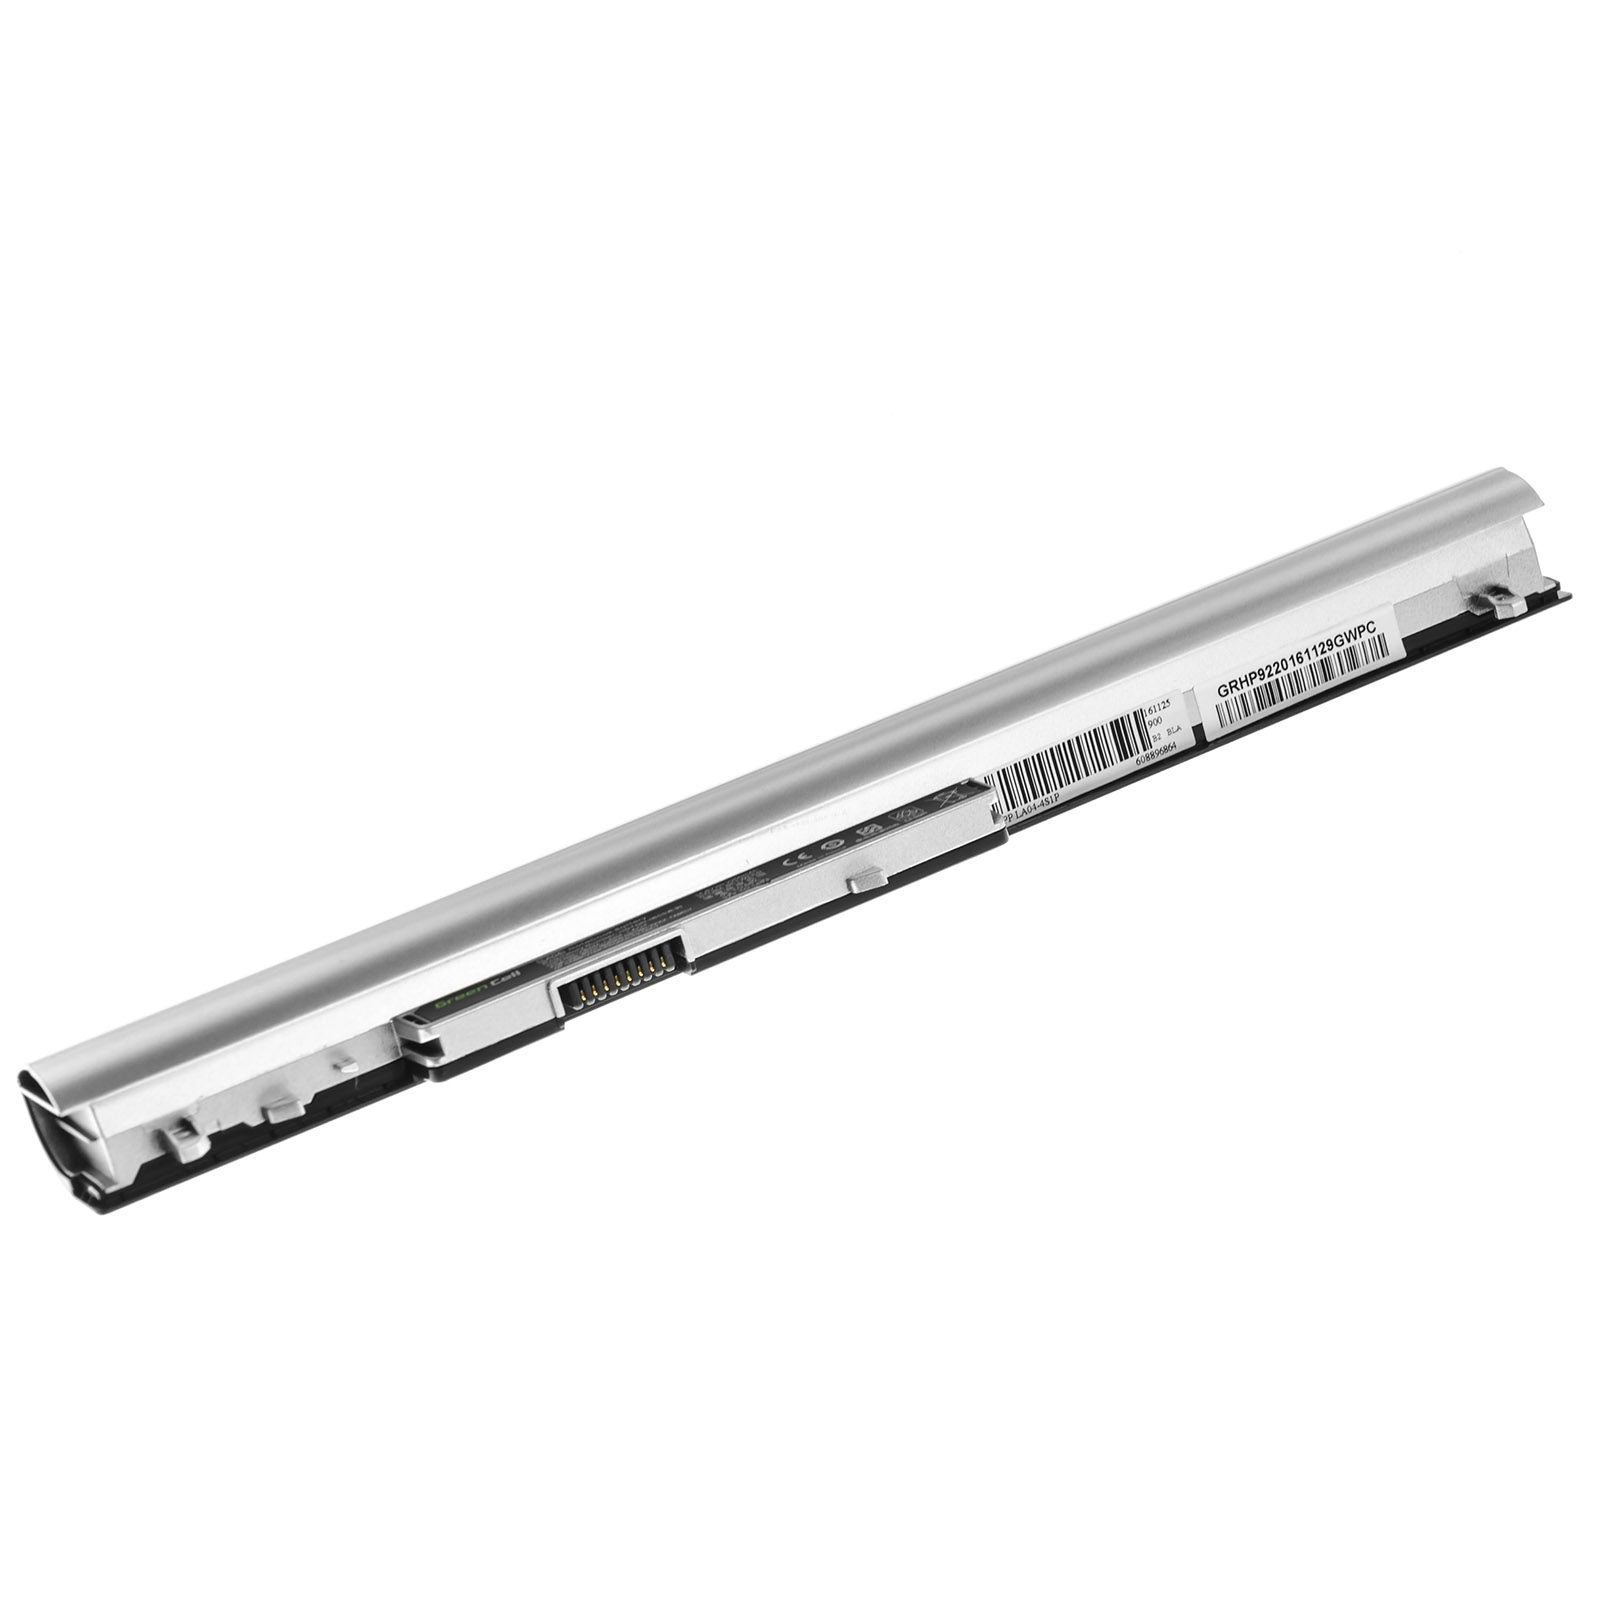 LA04 728460-001 Battery for HP 248 G1 340 G1 and HP